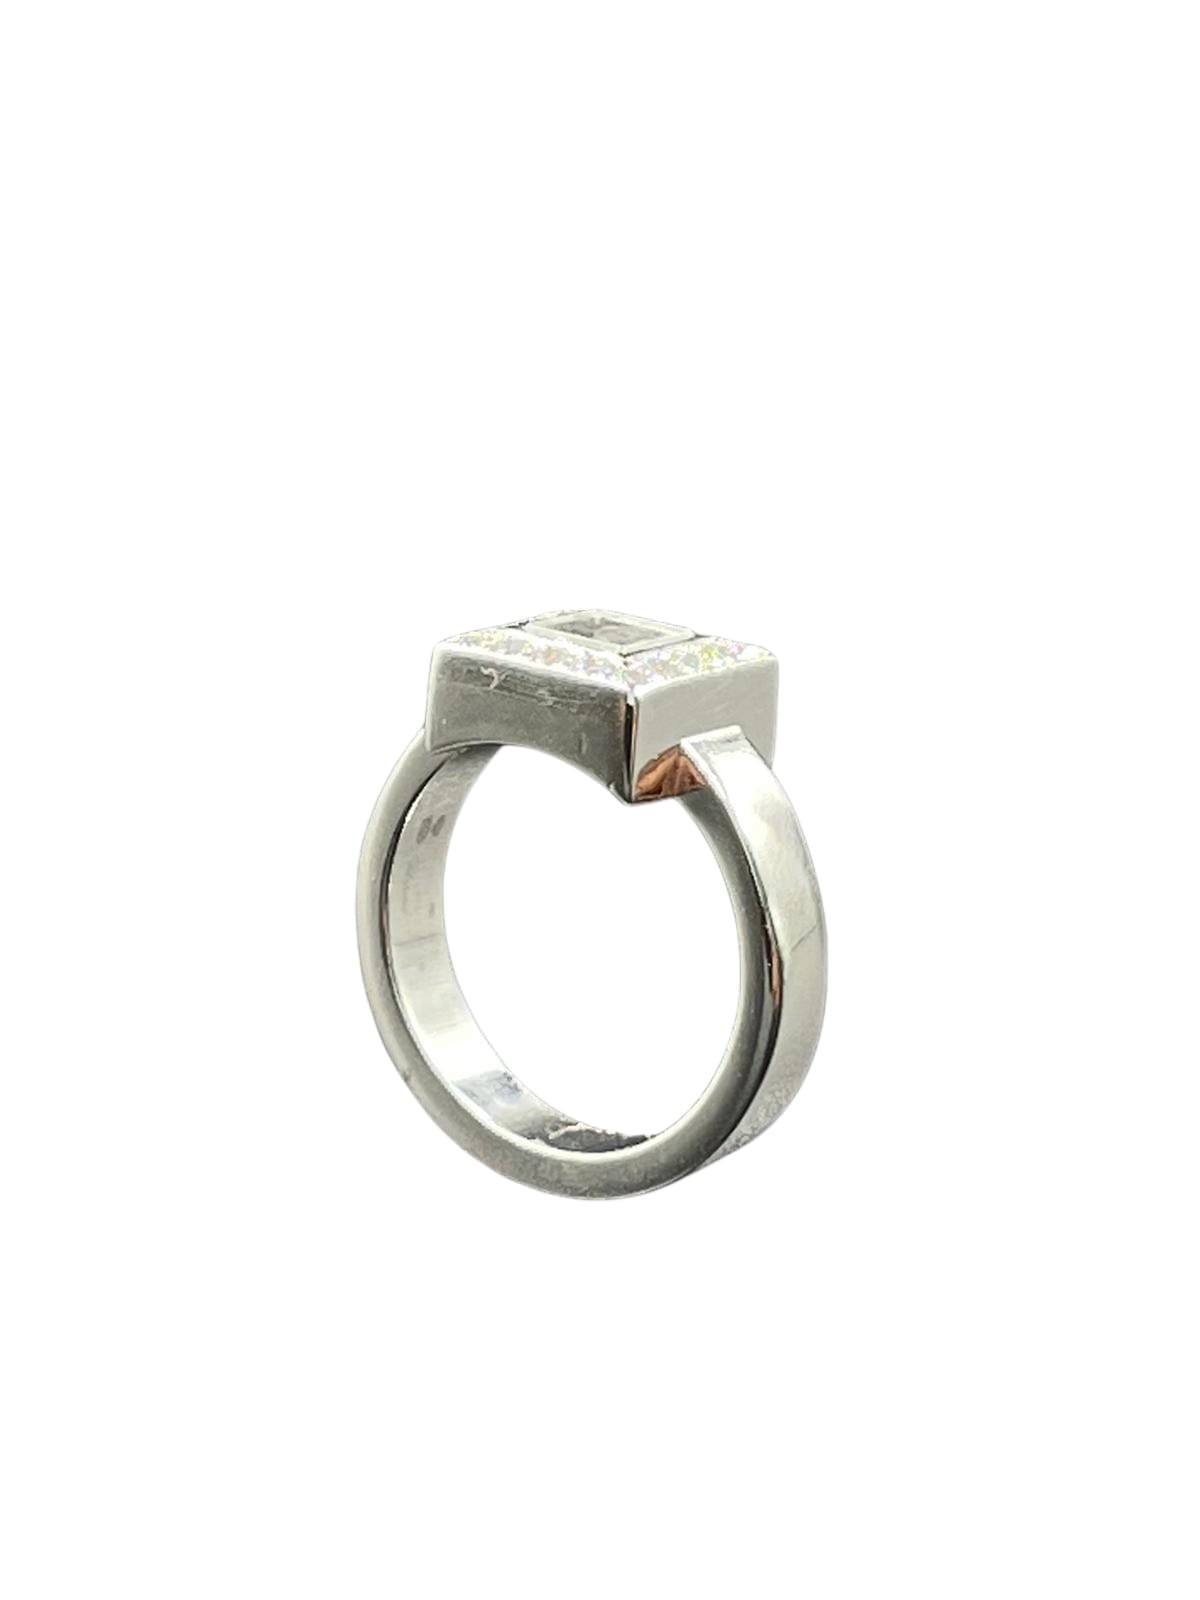 Chopard 18k white gold diamonds set square face ring, weight 11.1g and size L1/2 (RRP £3500) - Image 2 of 3